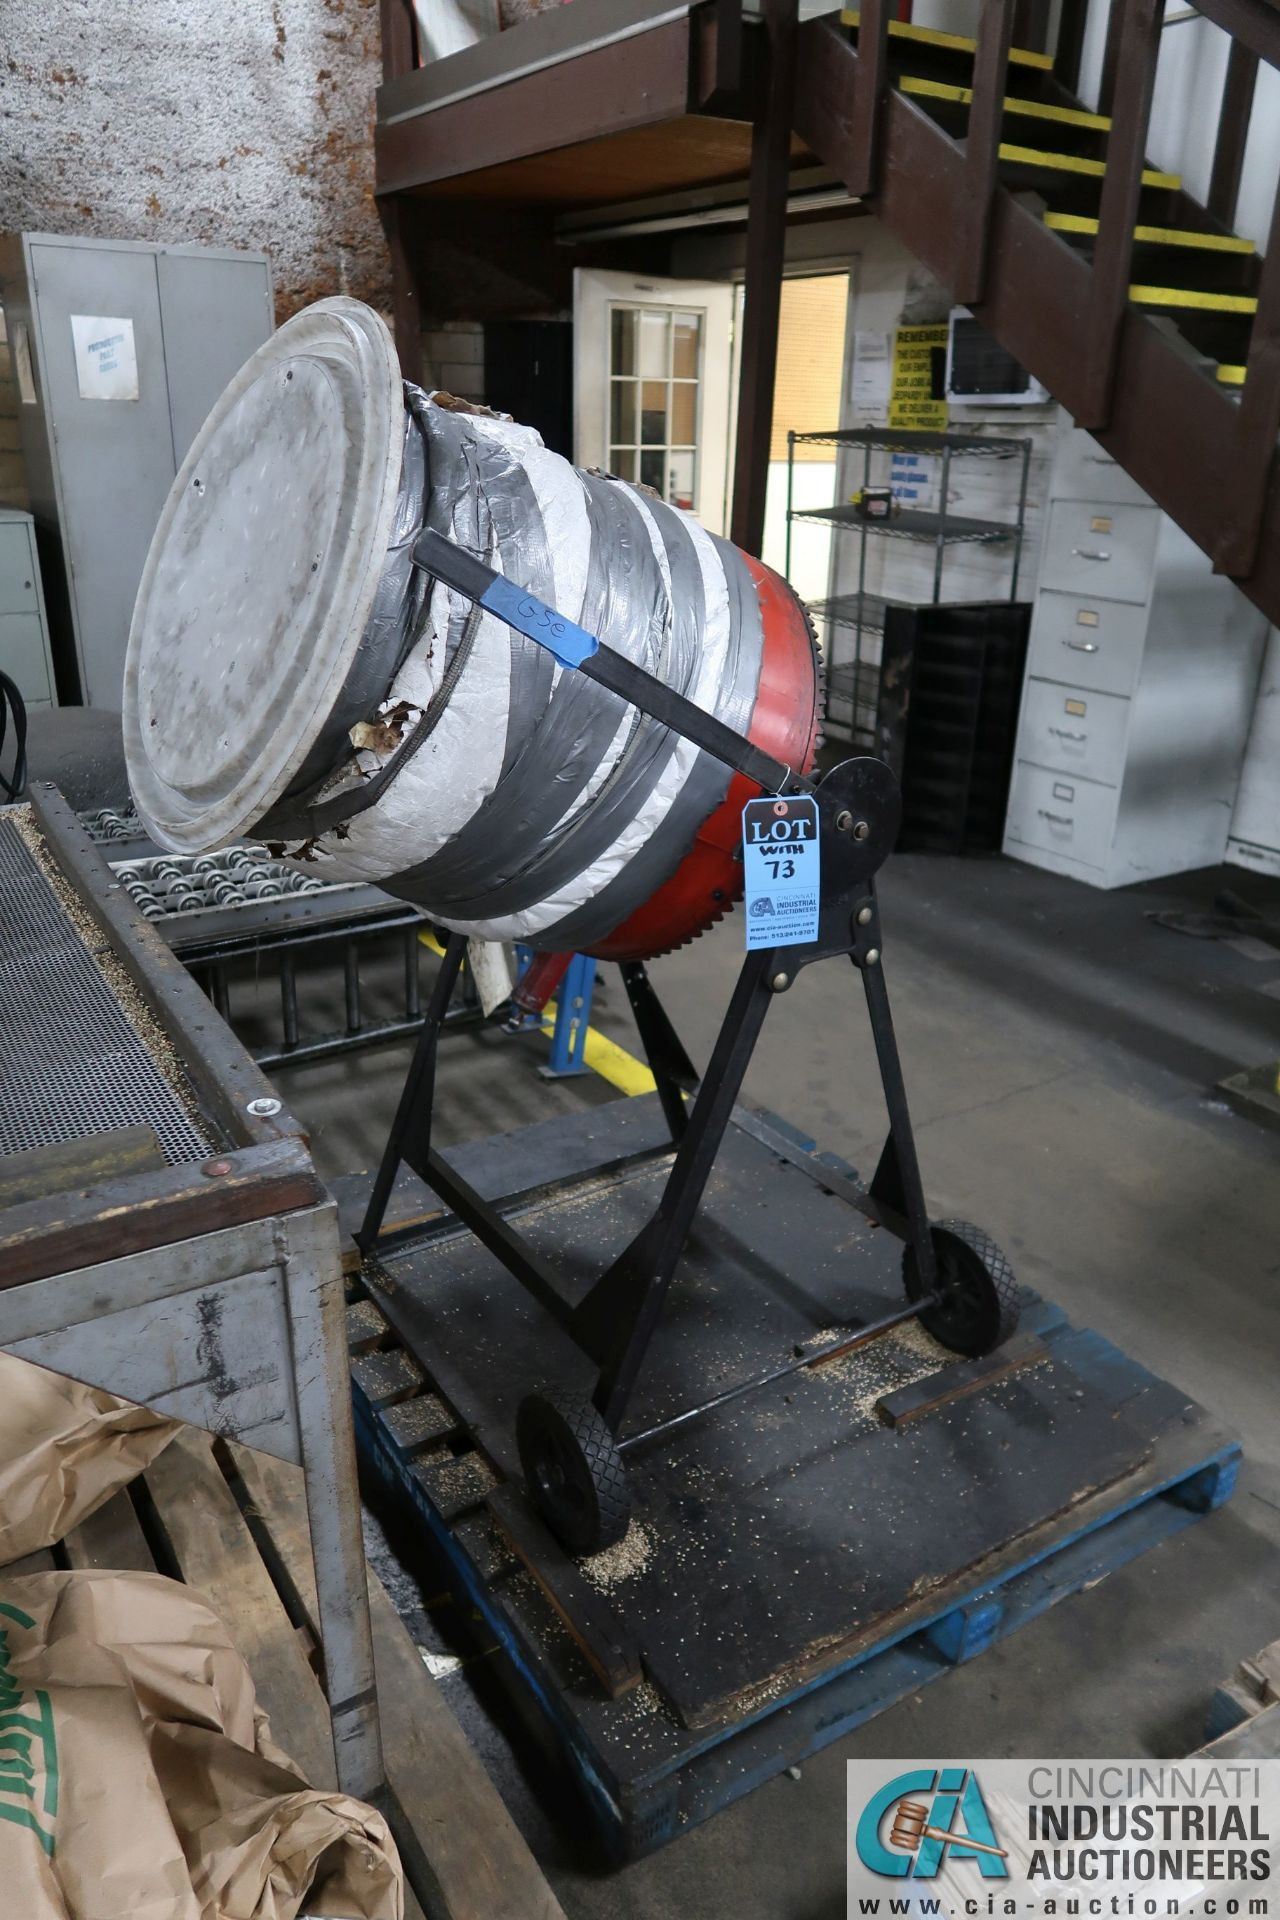 PORTABLE ELECTRIC CEMENT MIXERS CONVERTED TO CORN COB MEDIA FINISHING MACHINE WITH SIFTING TABLE AND - Image 6 of 6